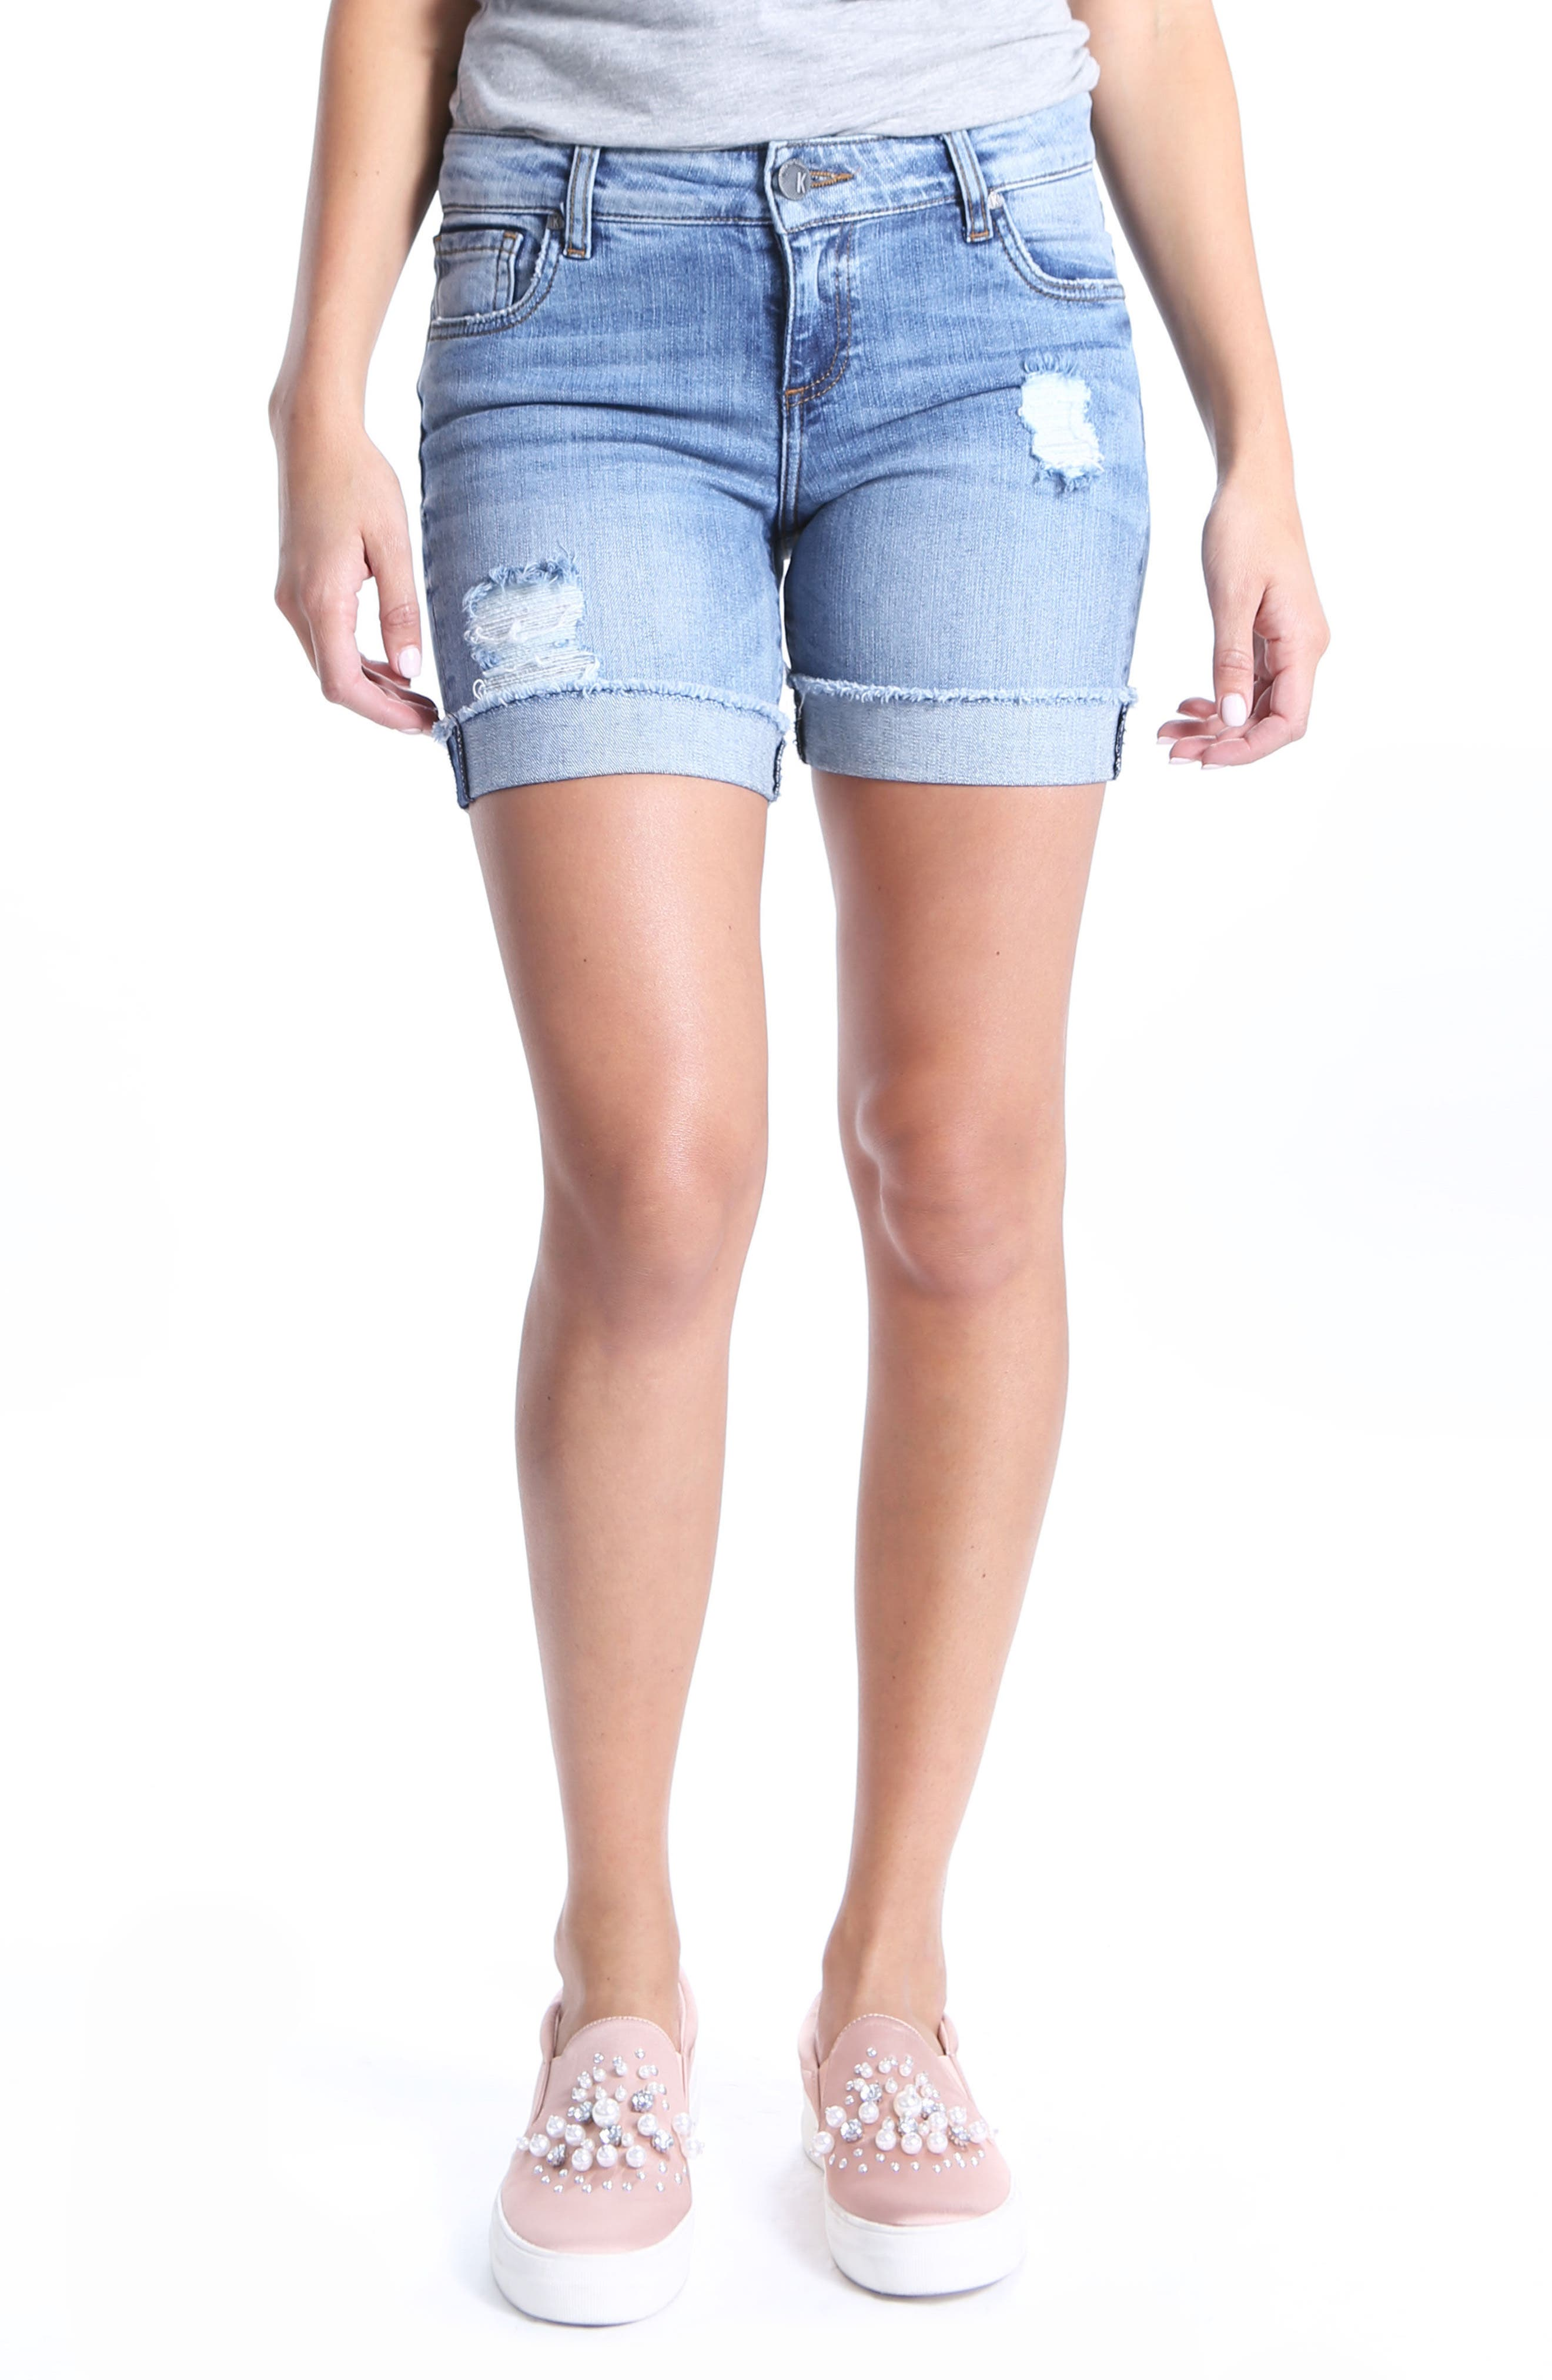 Alternate Image 1 Selected - KUT from the Kloth Catherine Ripped Denim Boyfriend Shorts (Organized)